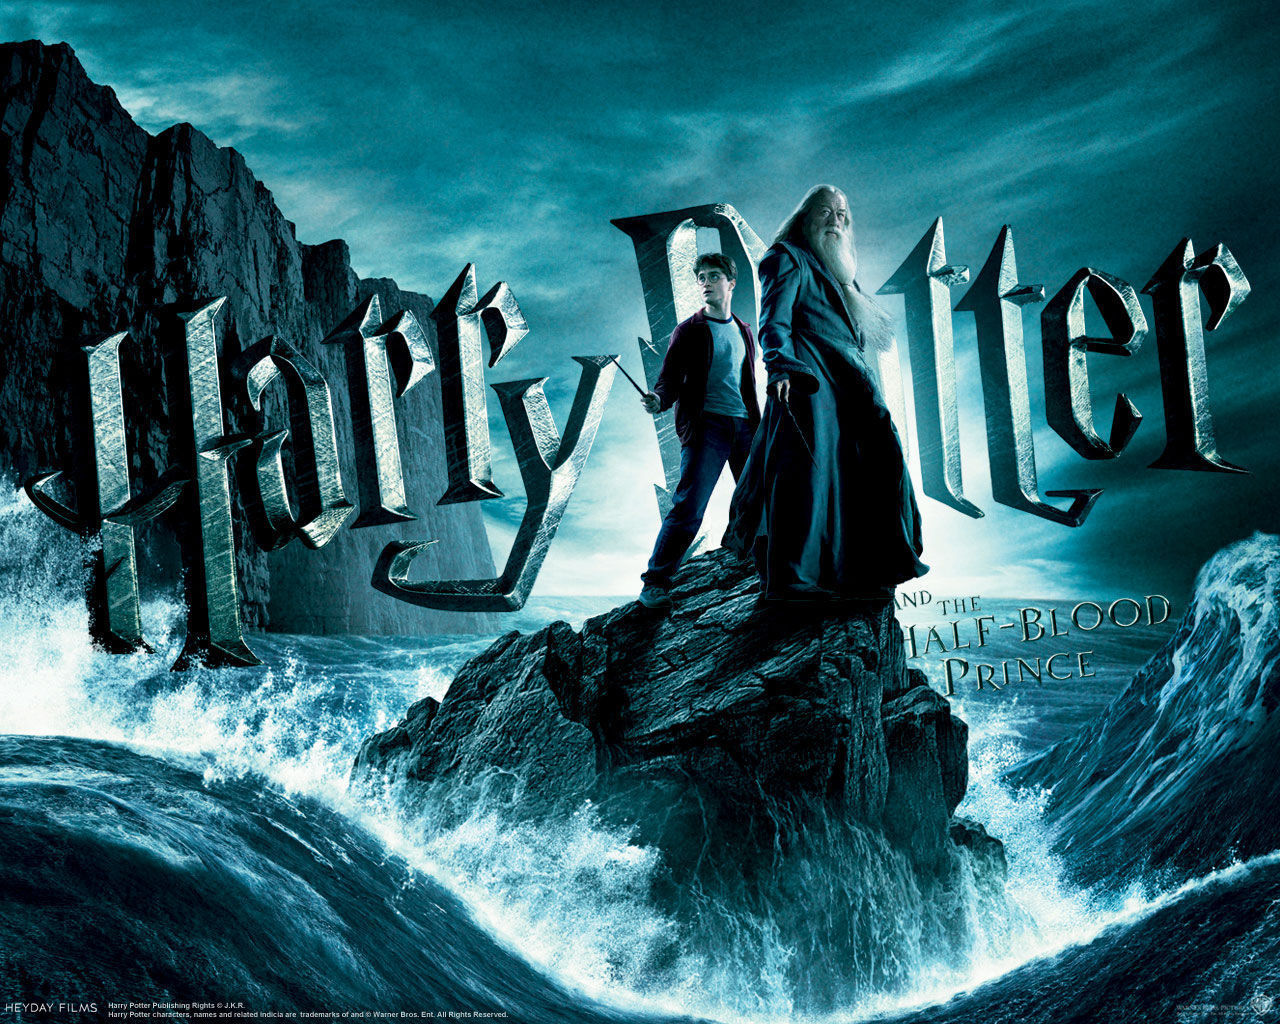 Harry Potter images Harry Potter wallpaper photos 12708172 1280x1024